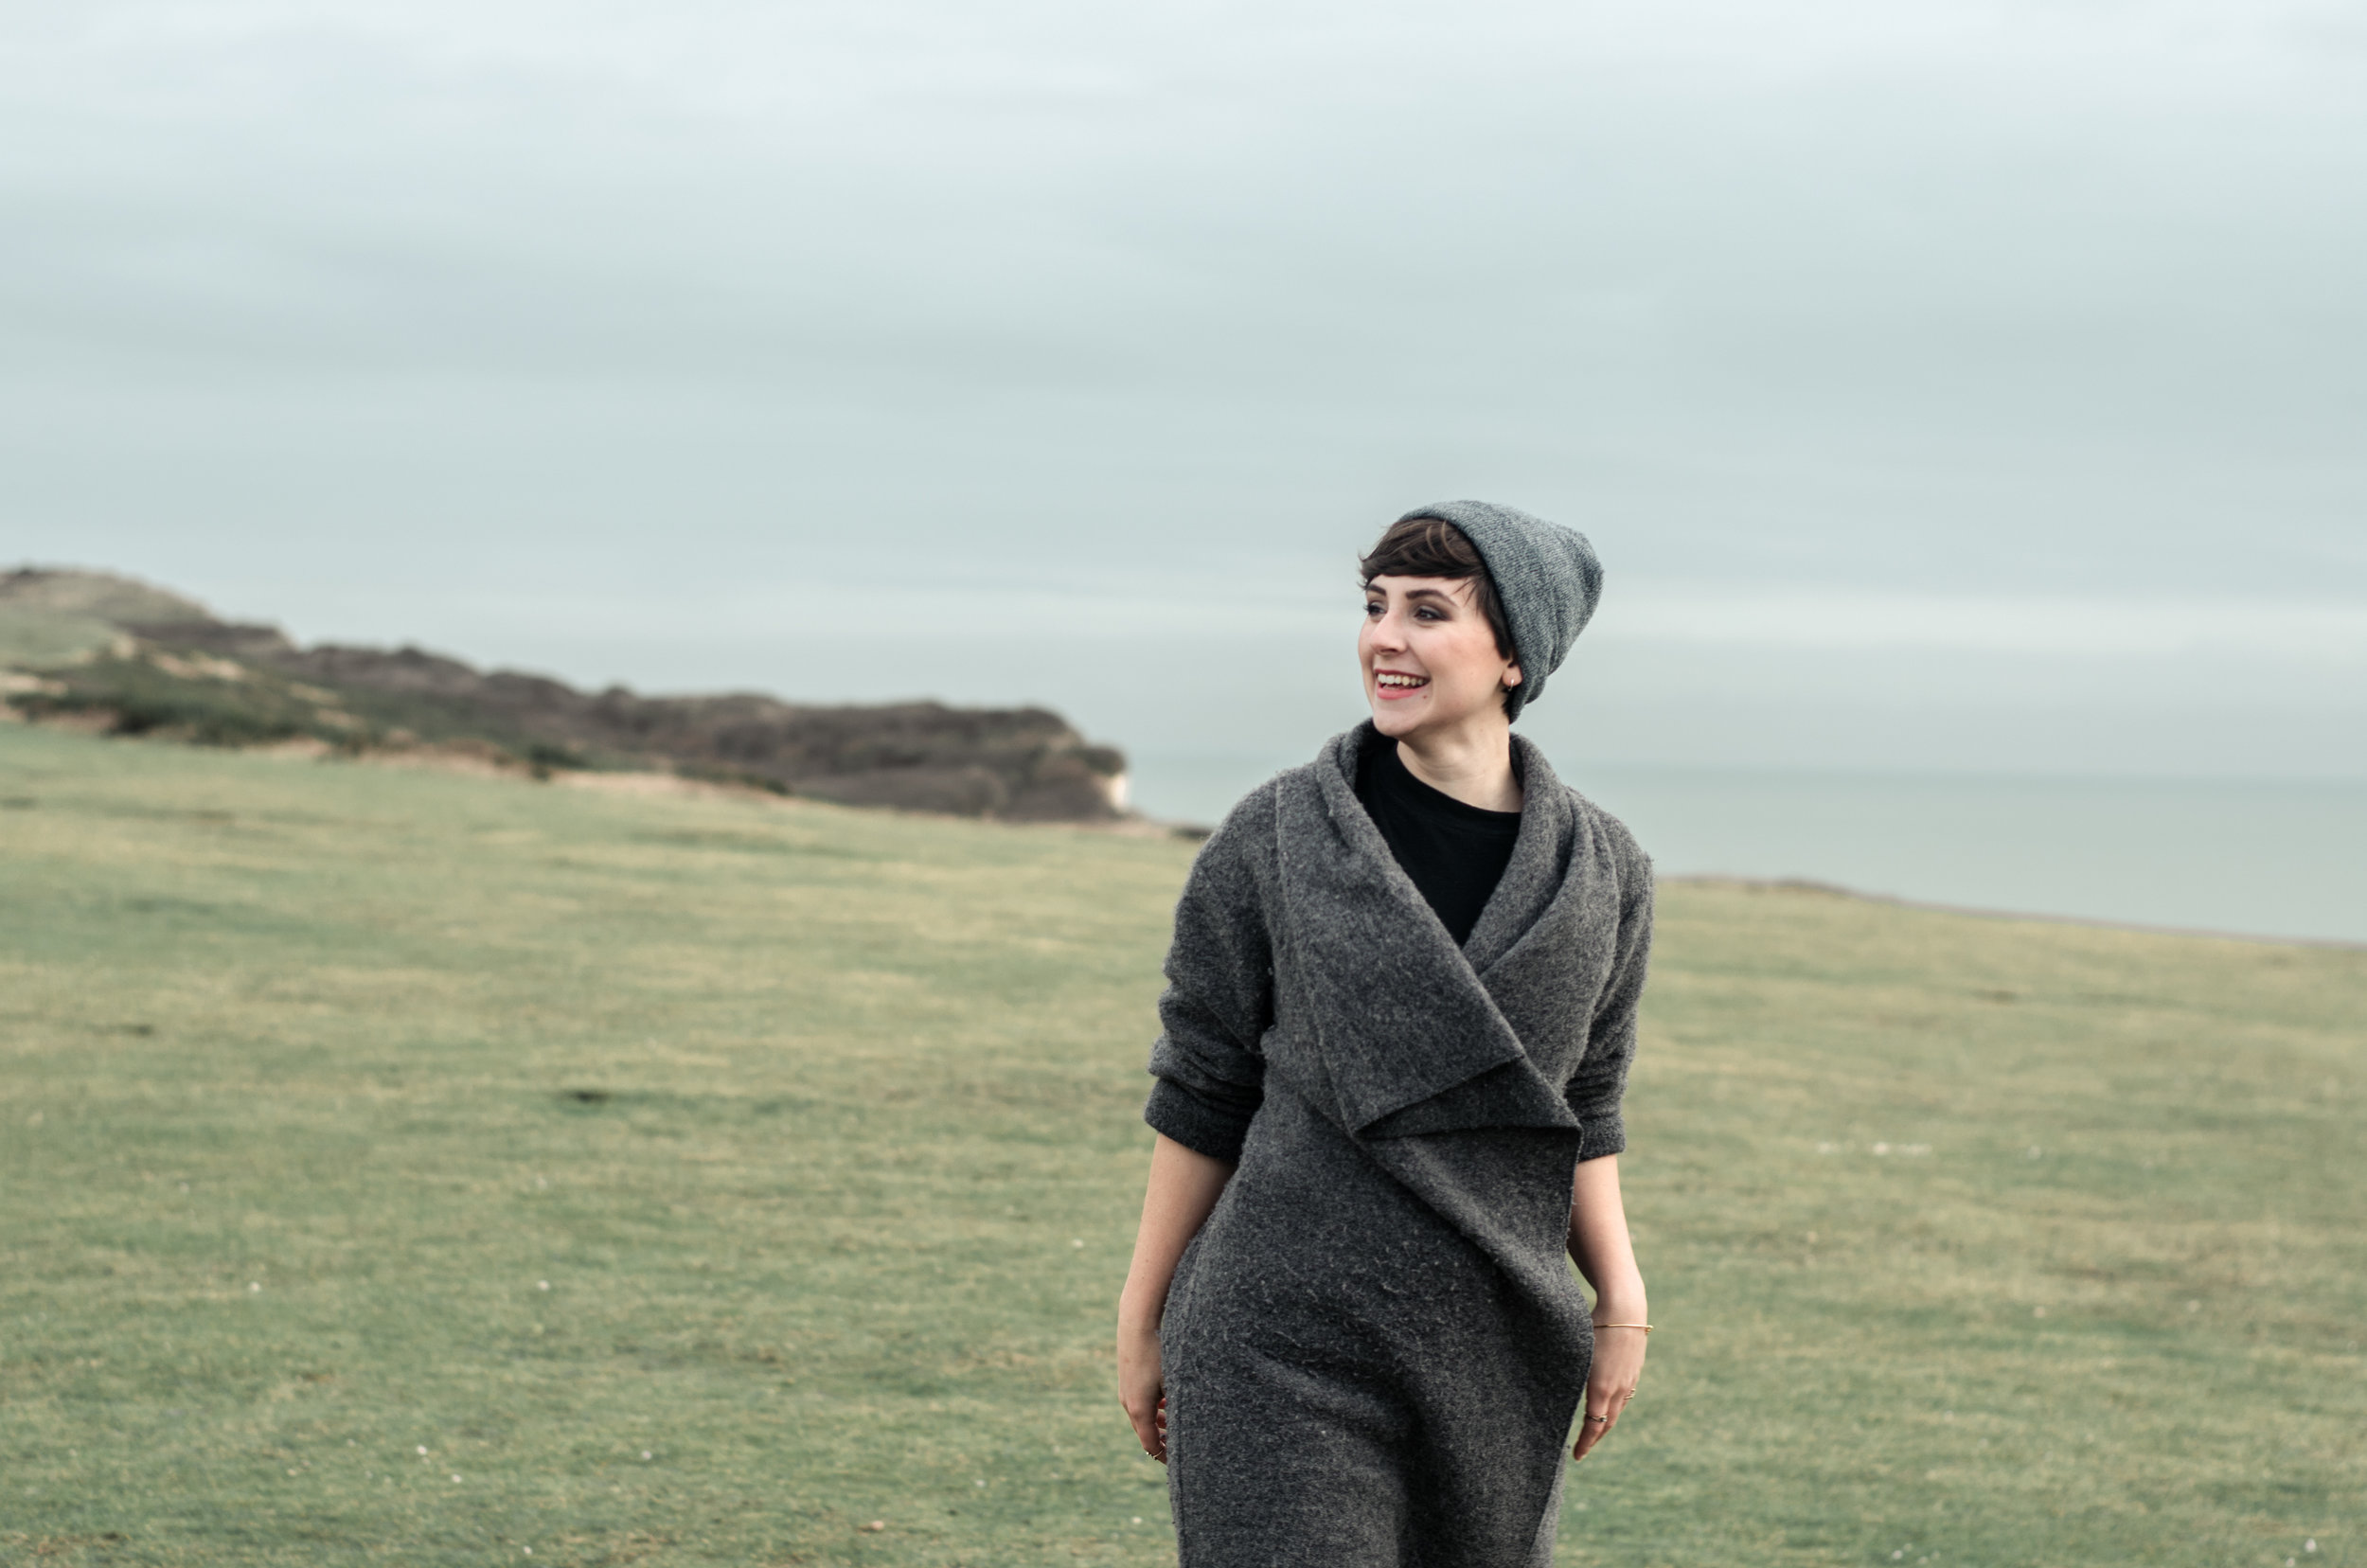 Jess - Birling Gap - Portraits - Aiste Saulyte Photography - 2017-11-9-31.jpg